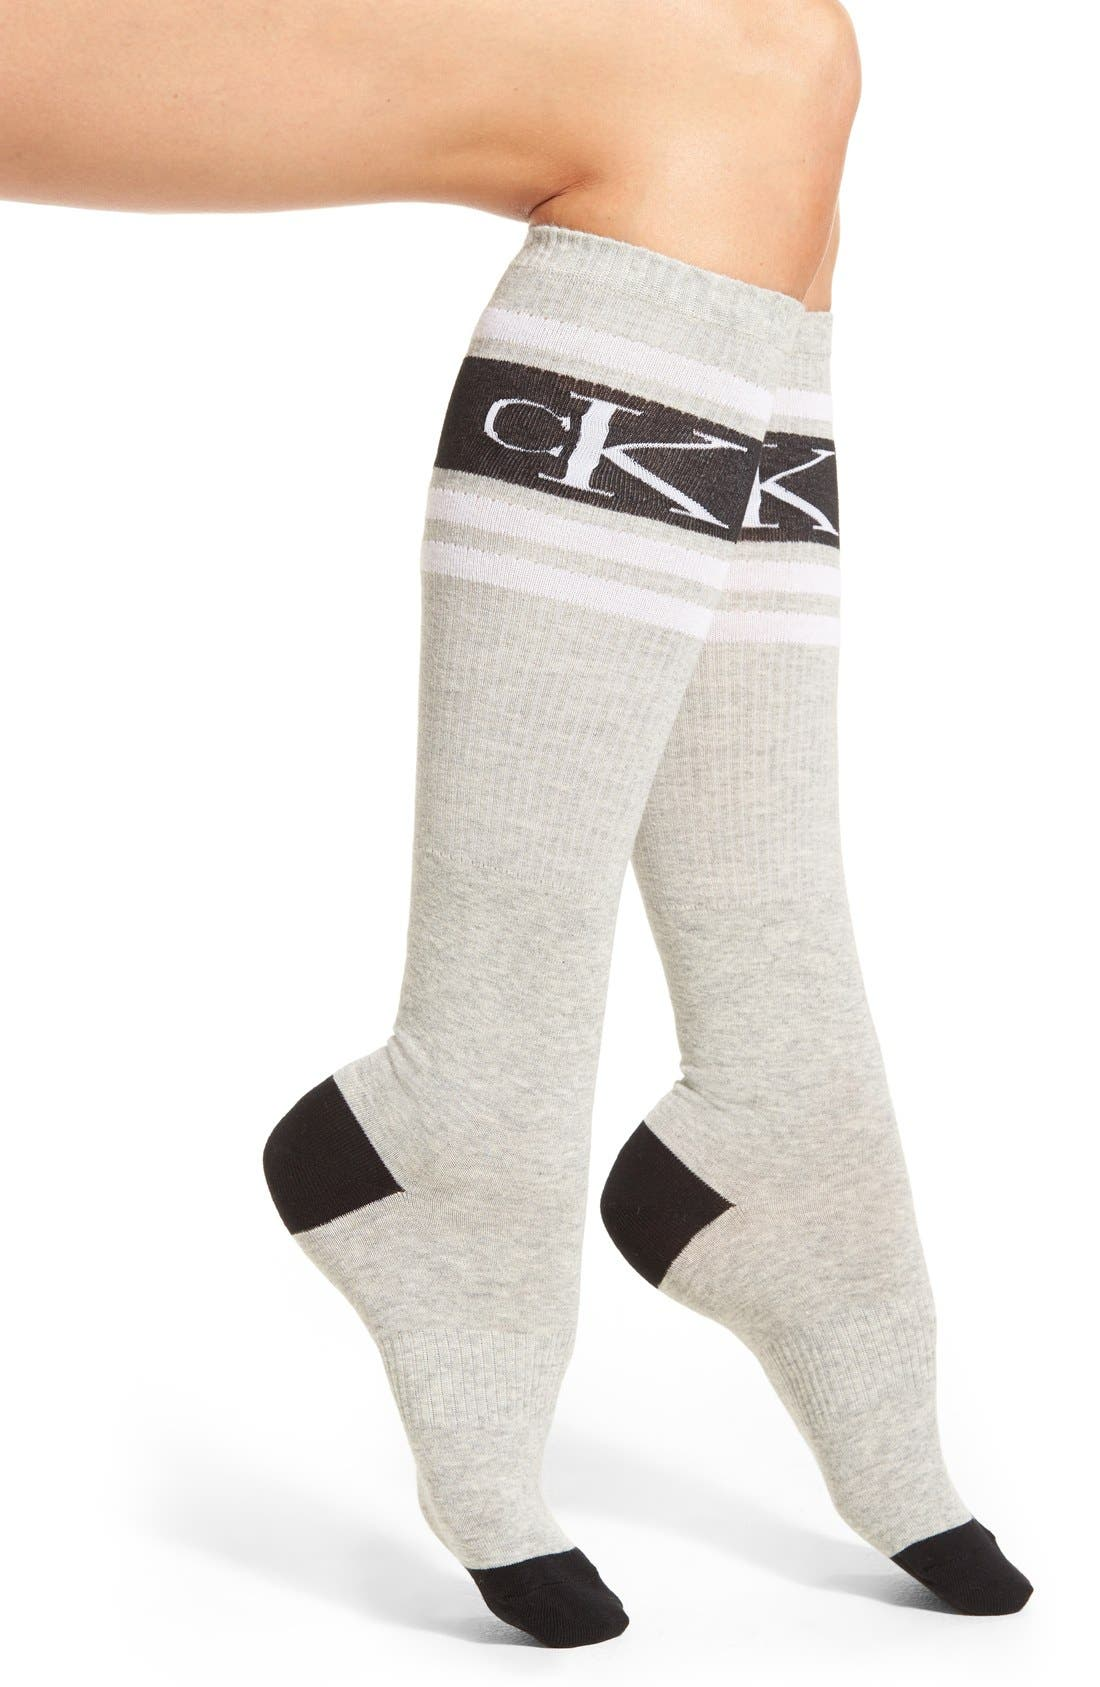 Alternate Image 1 Selected - Calvin Klein 'Icon Logo' Knee High Socks